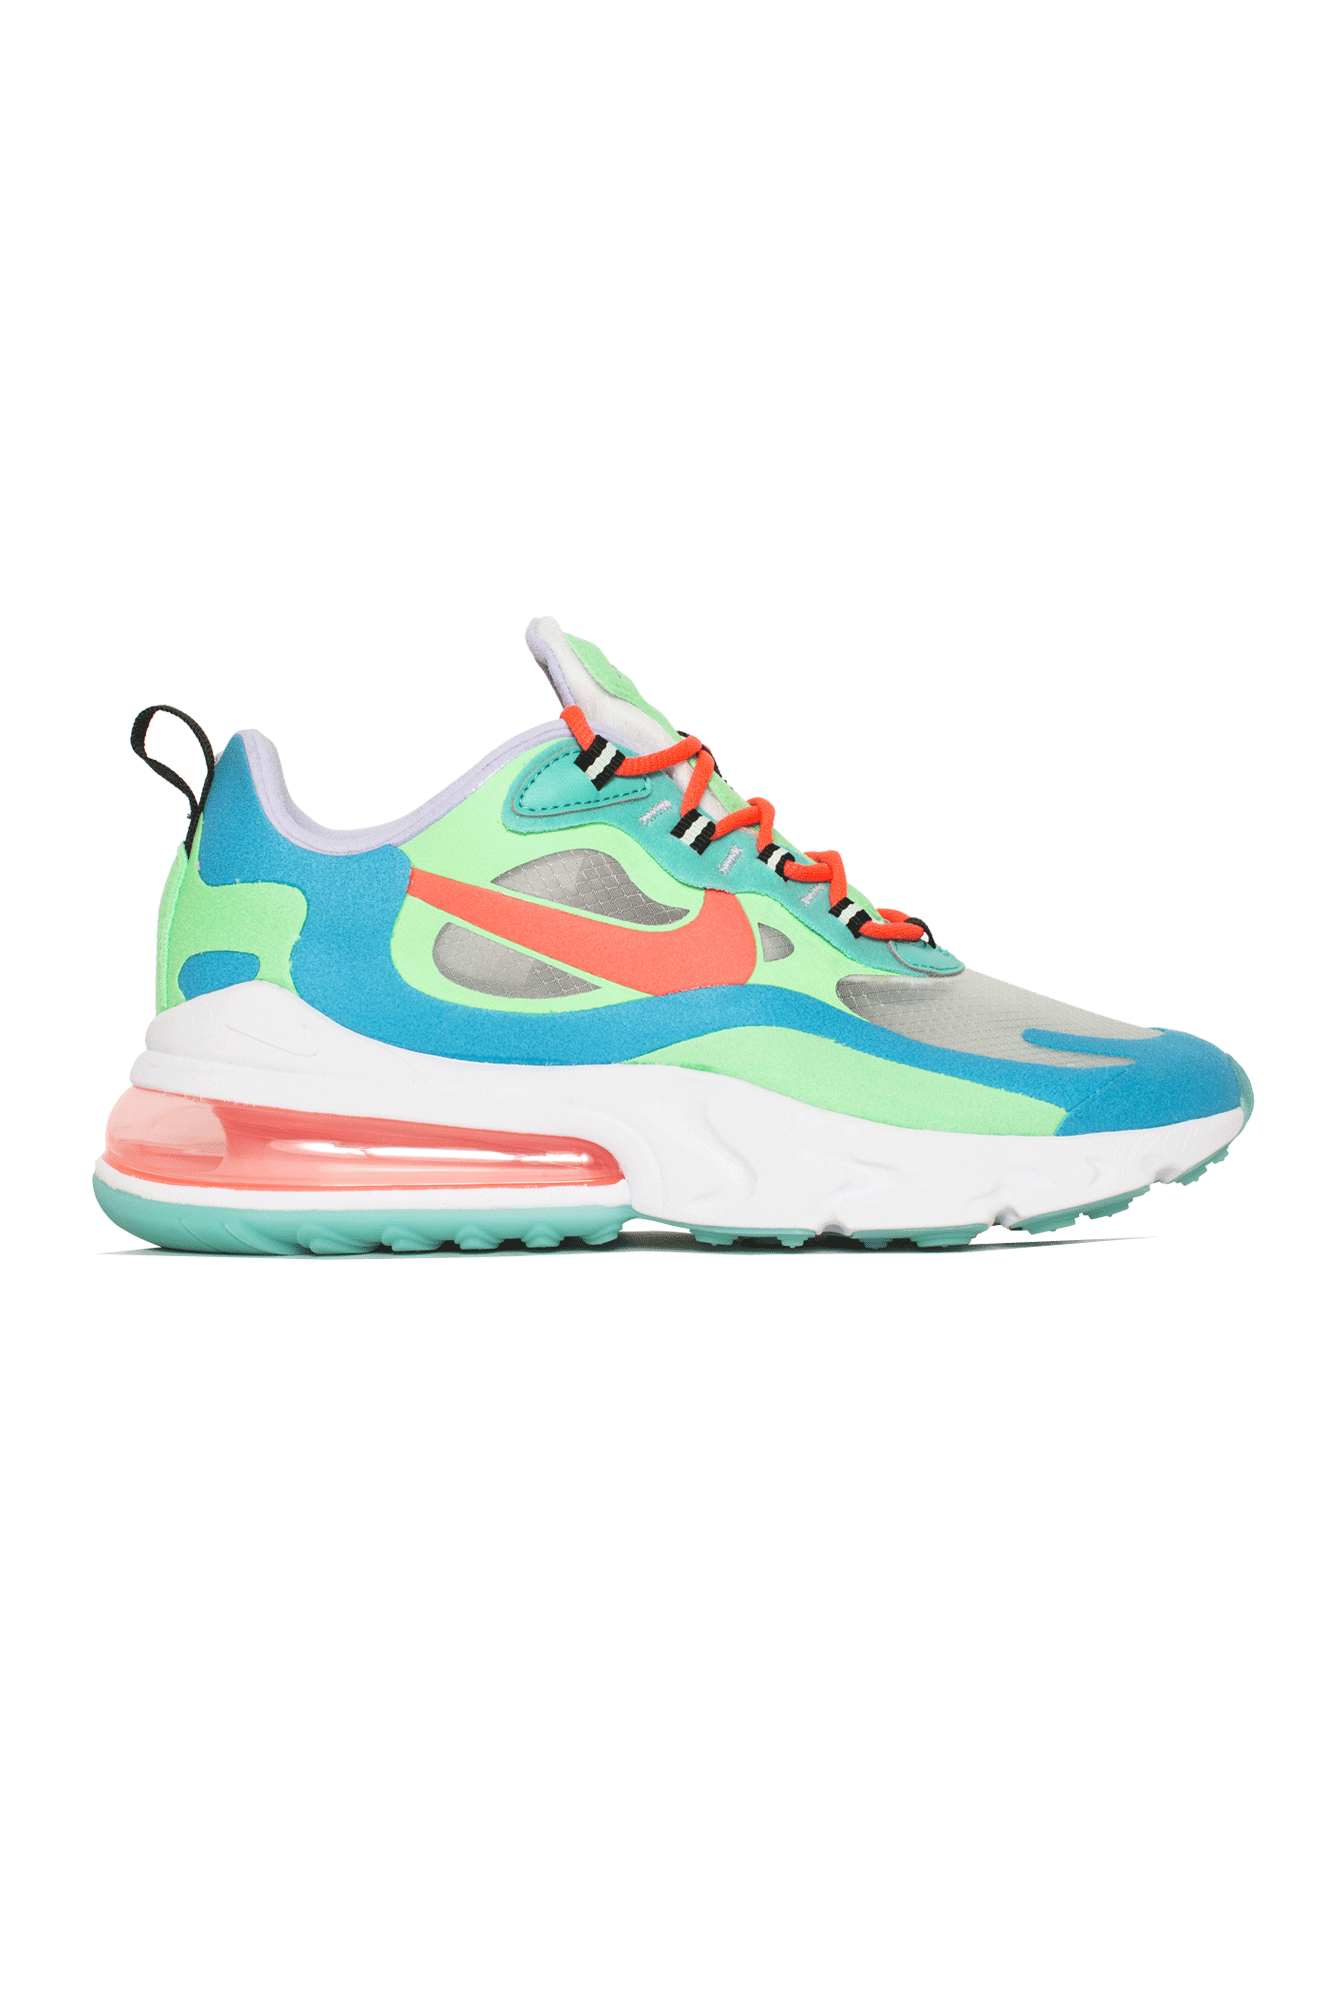 Nike red and pink Air Max 270 React sneakers